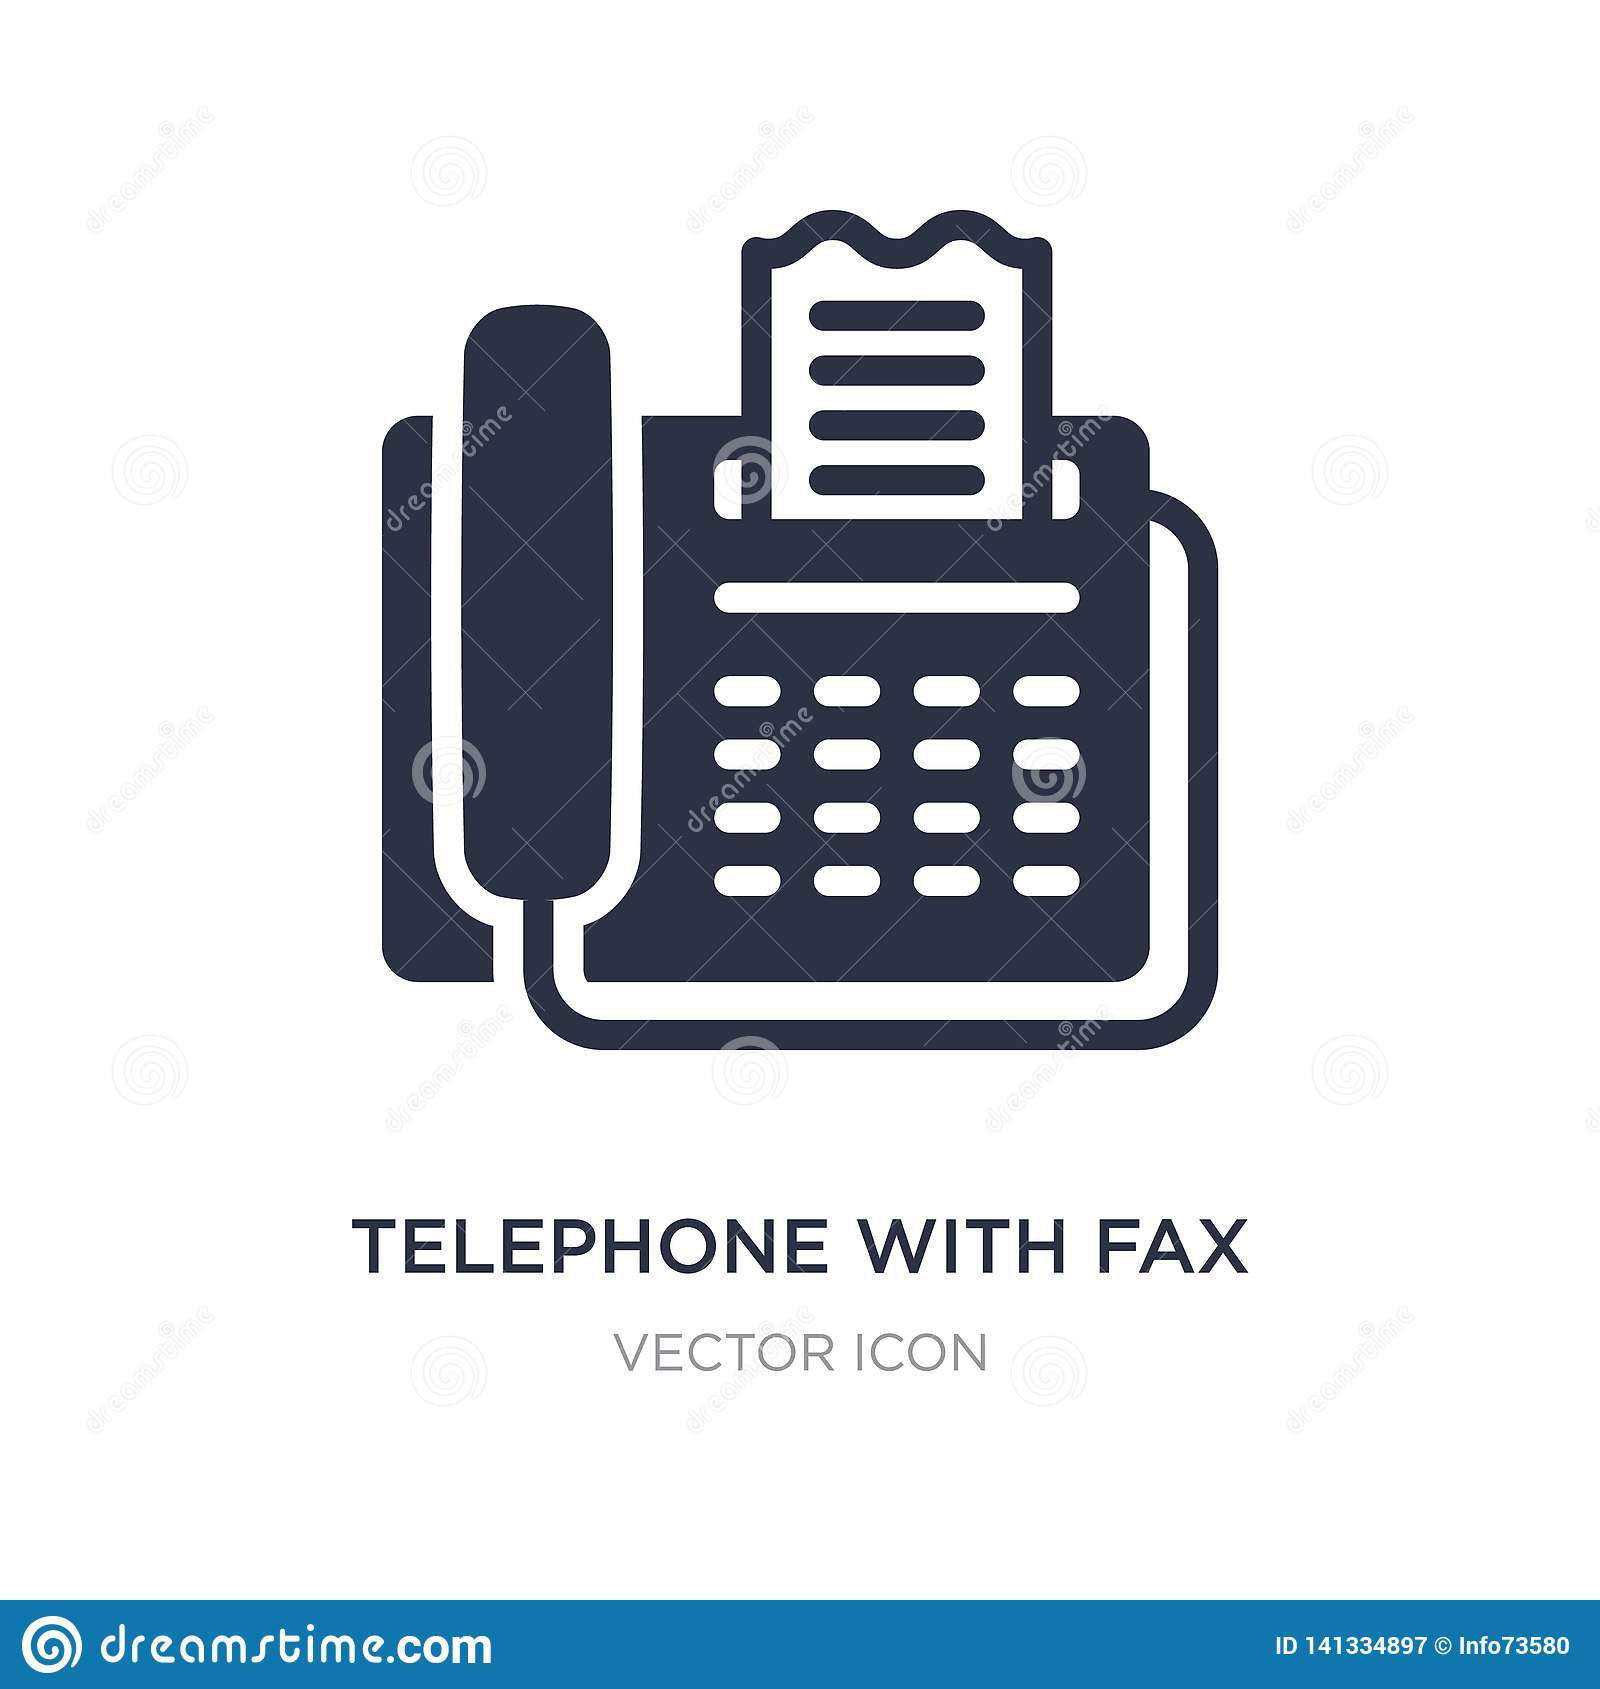 Download Fax Vector Logo